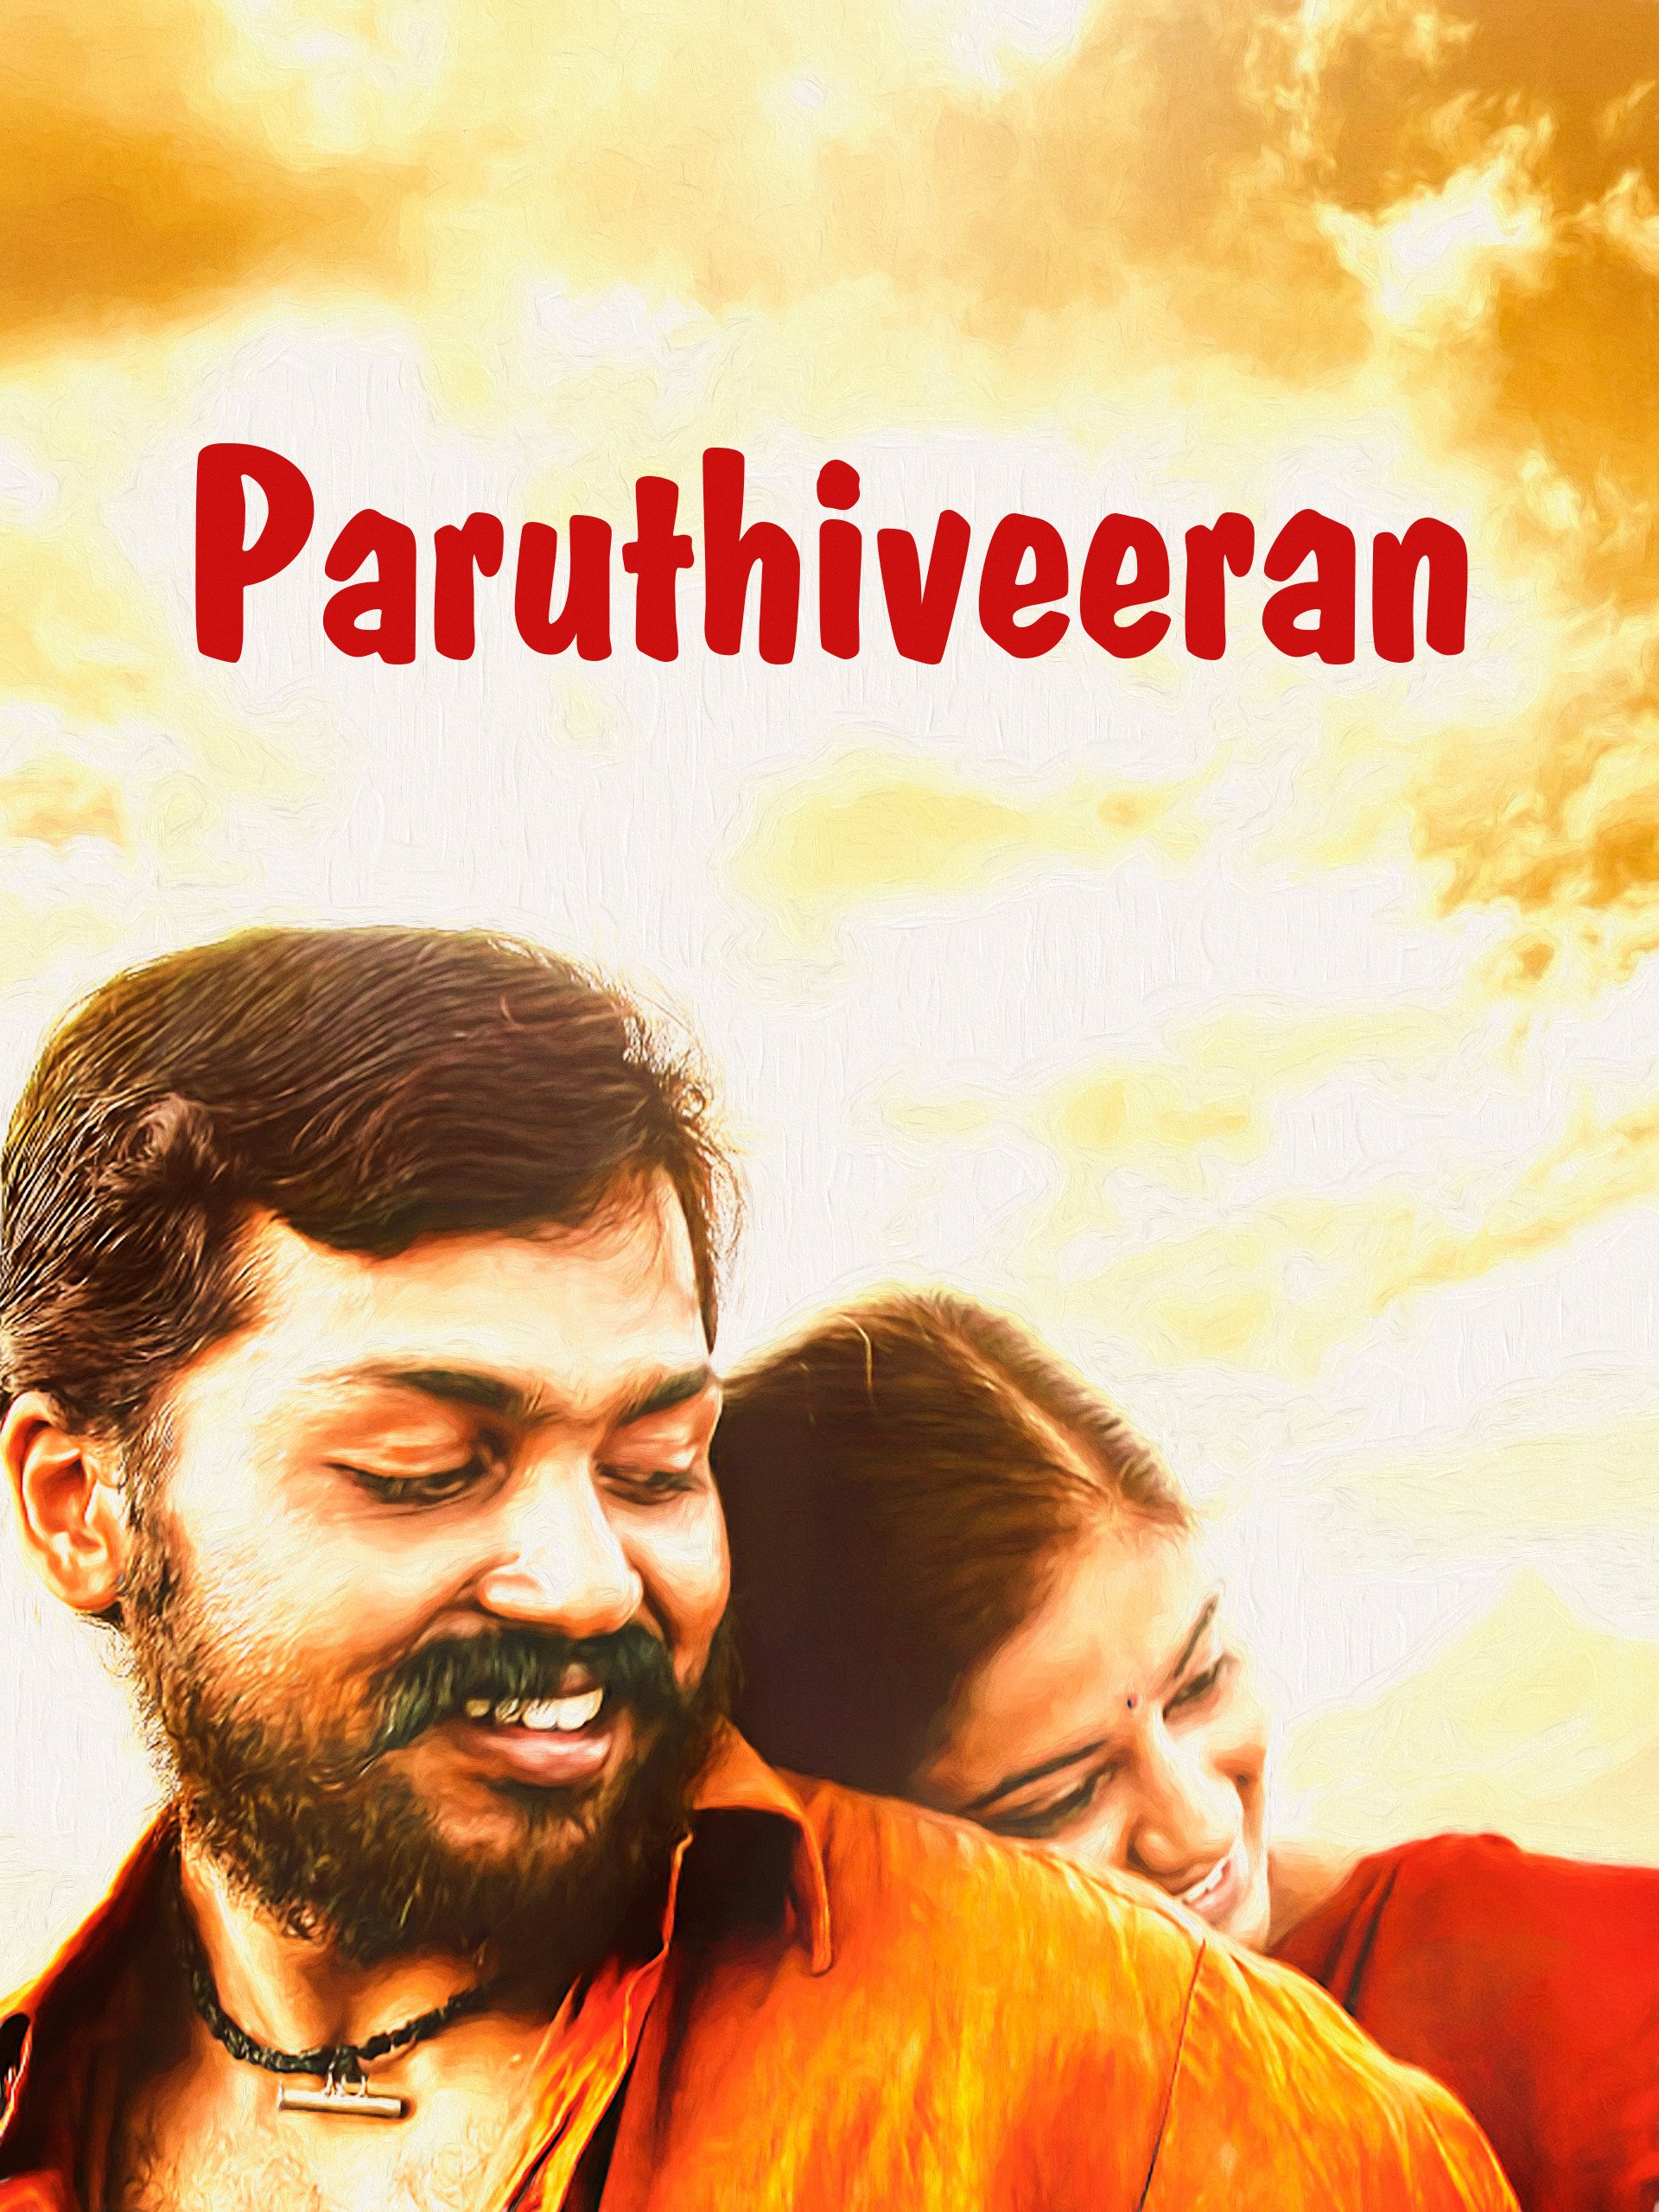 paruthiveeran songs download mp3